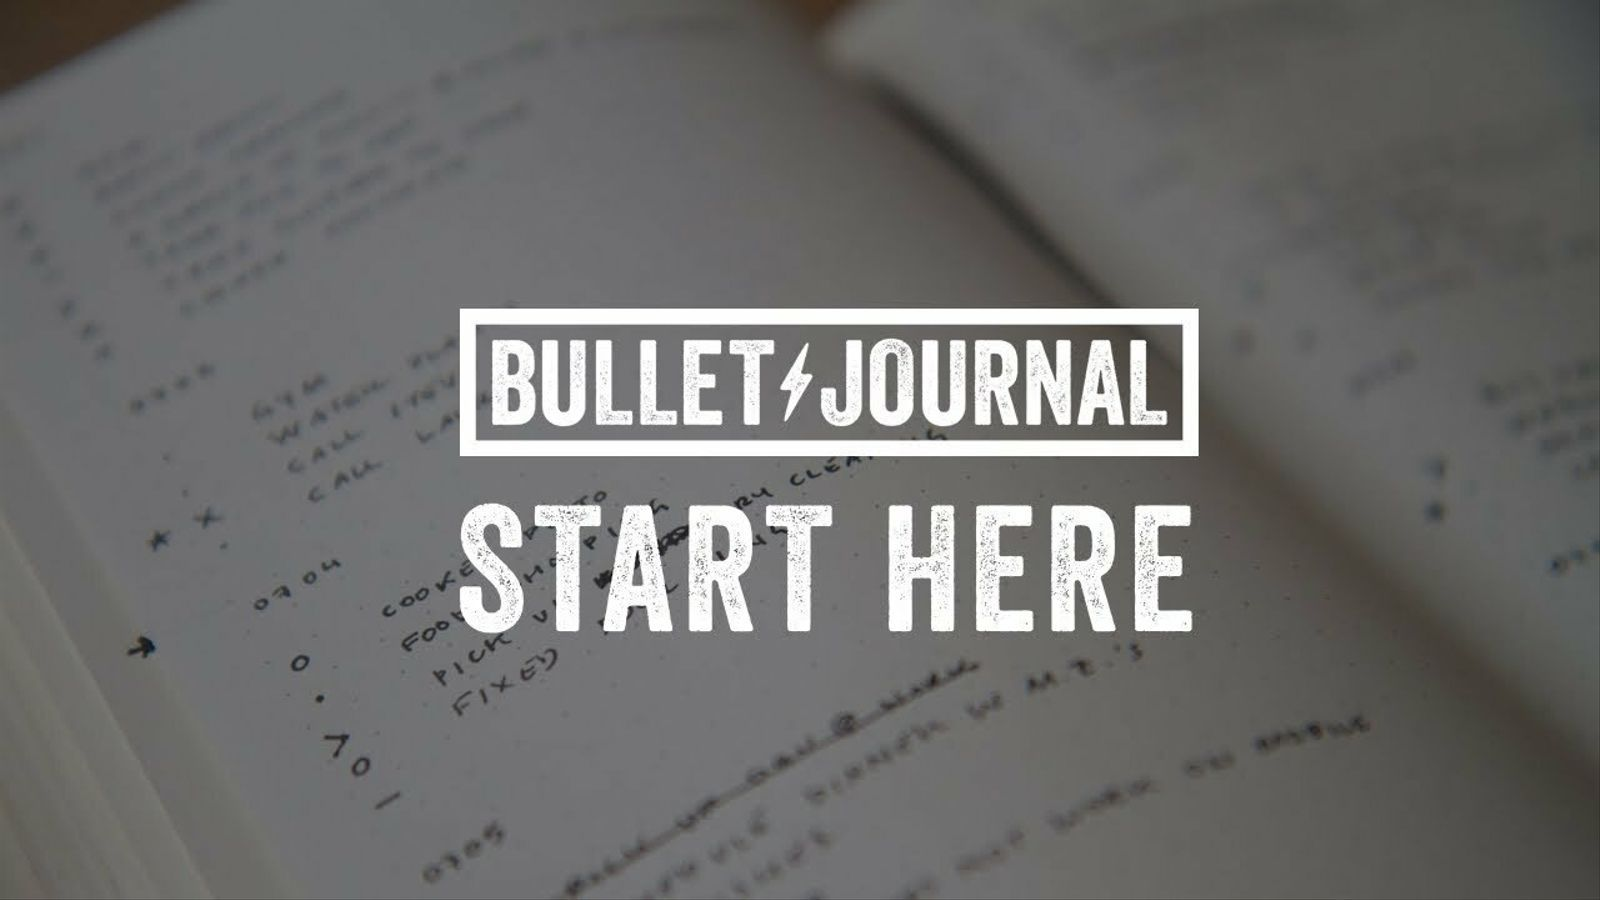 Com fer un 'Bullet Journal'